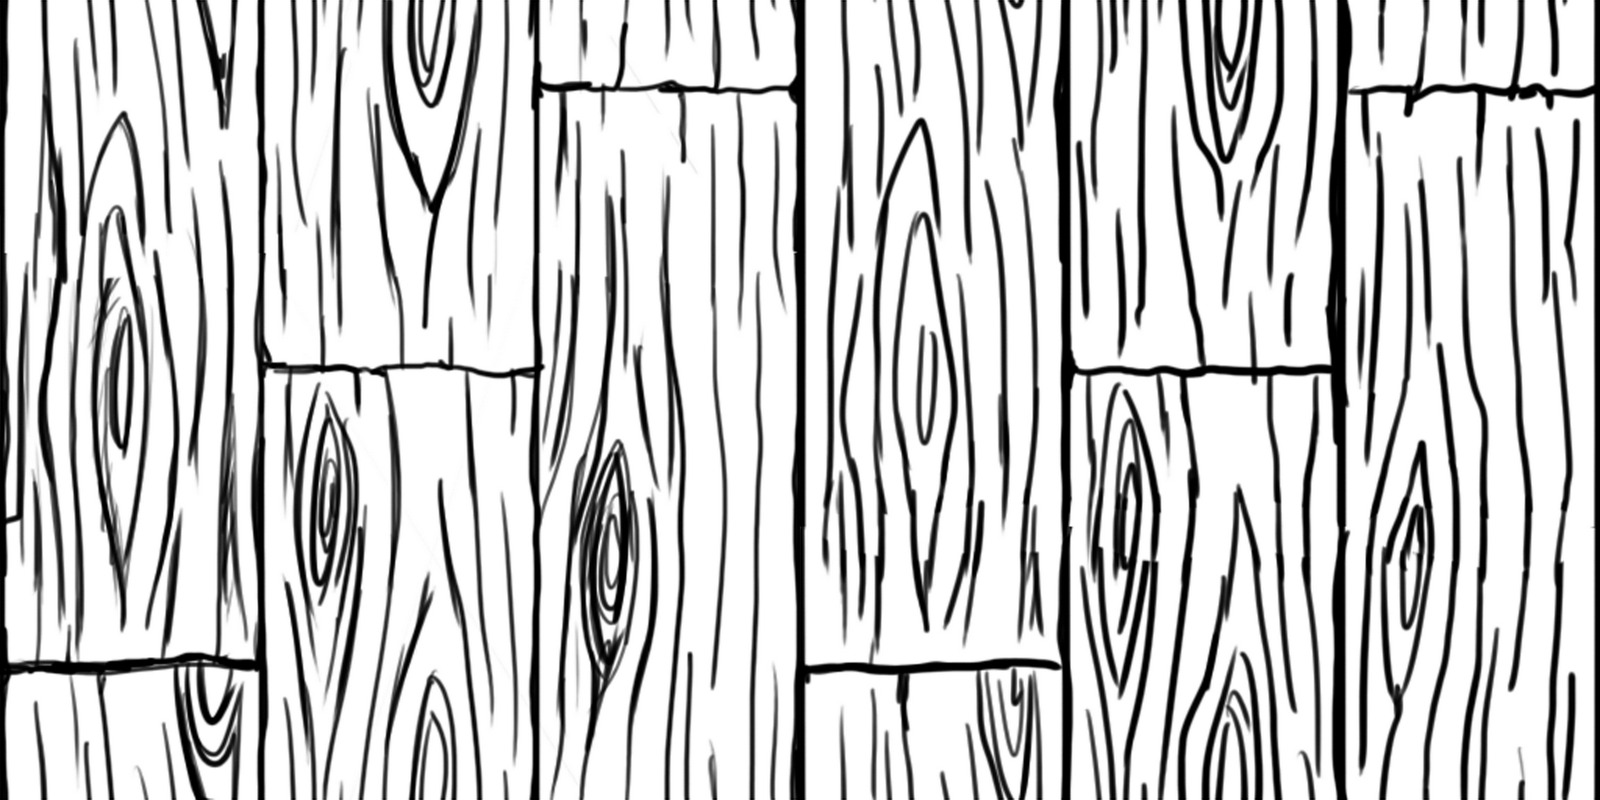 tree bark drawing pattern - Google Search | how to draw ...